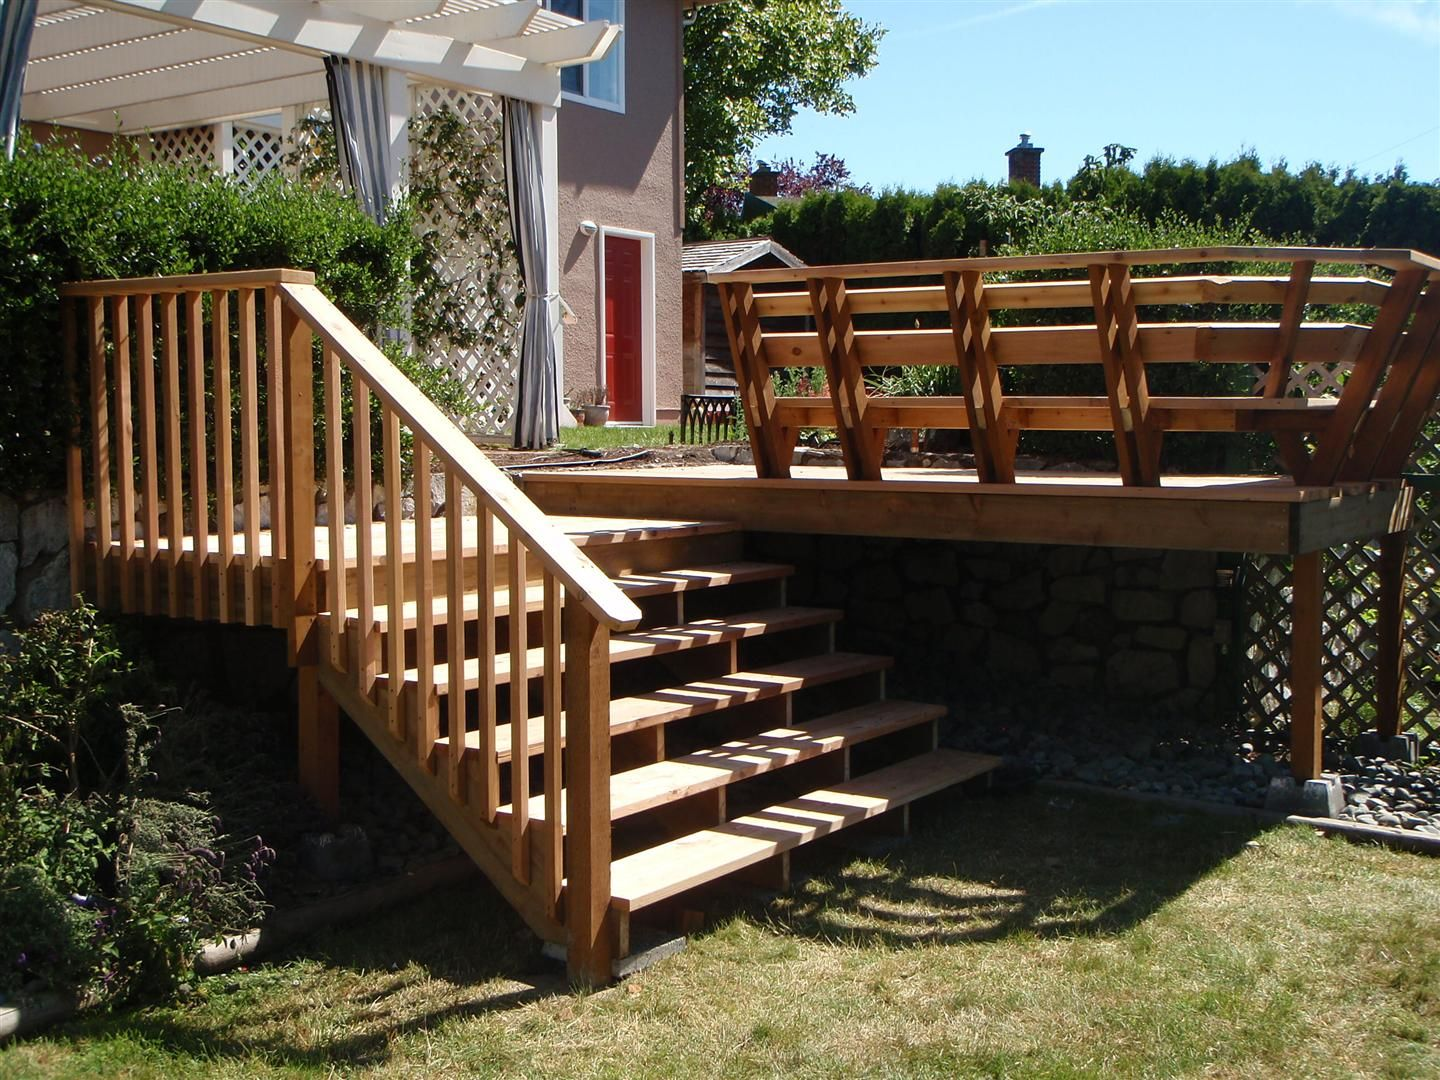 Best deck design ideas deck stairs and bench 01 deck stairs best deck design ideas deck stairs and bench 01 deck stairs ideas 2015 baanklon Images